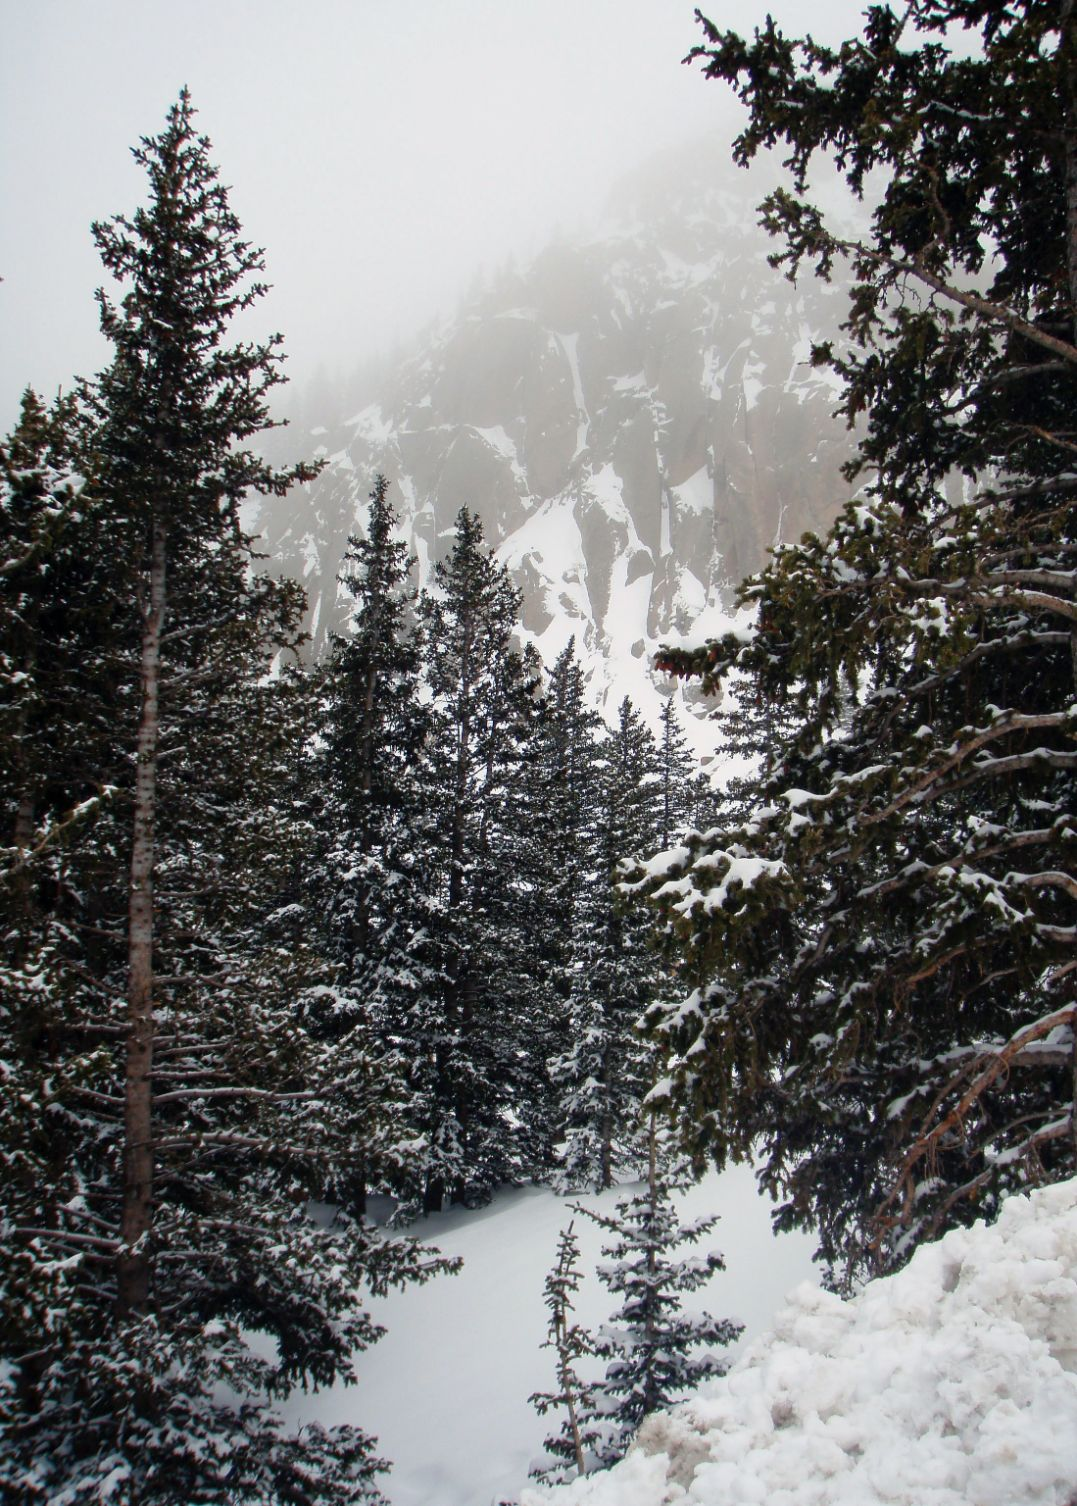 Winter scene with pine trees and fog in the mountains